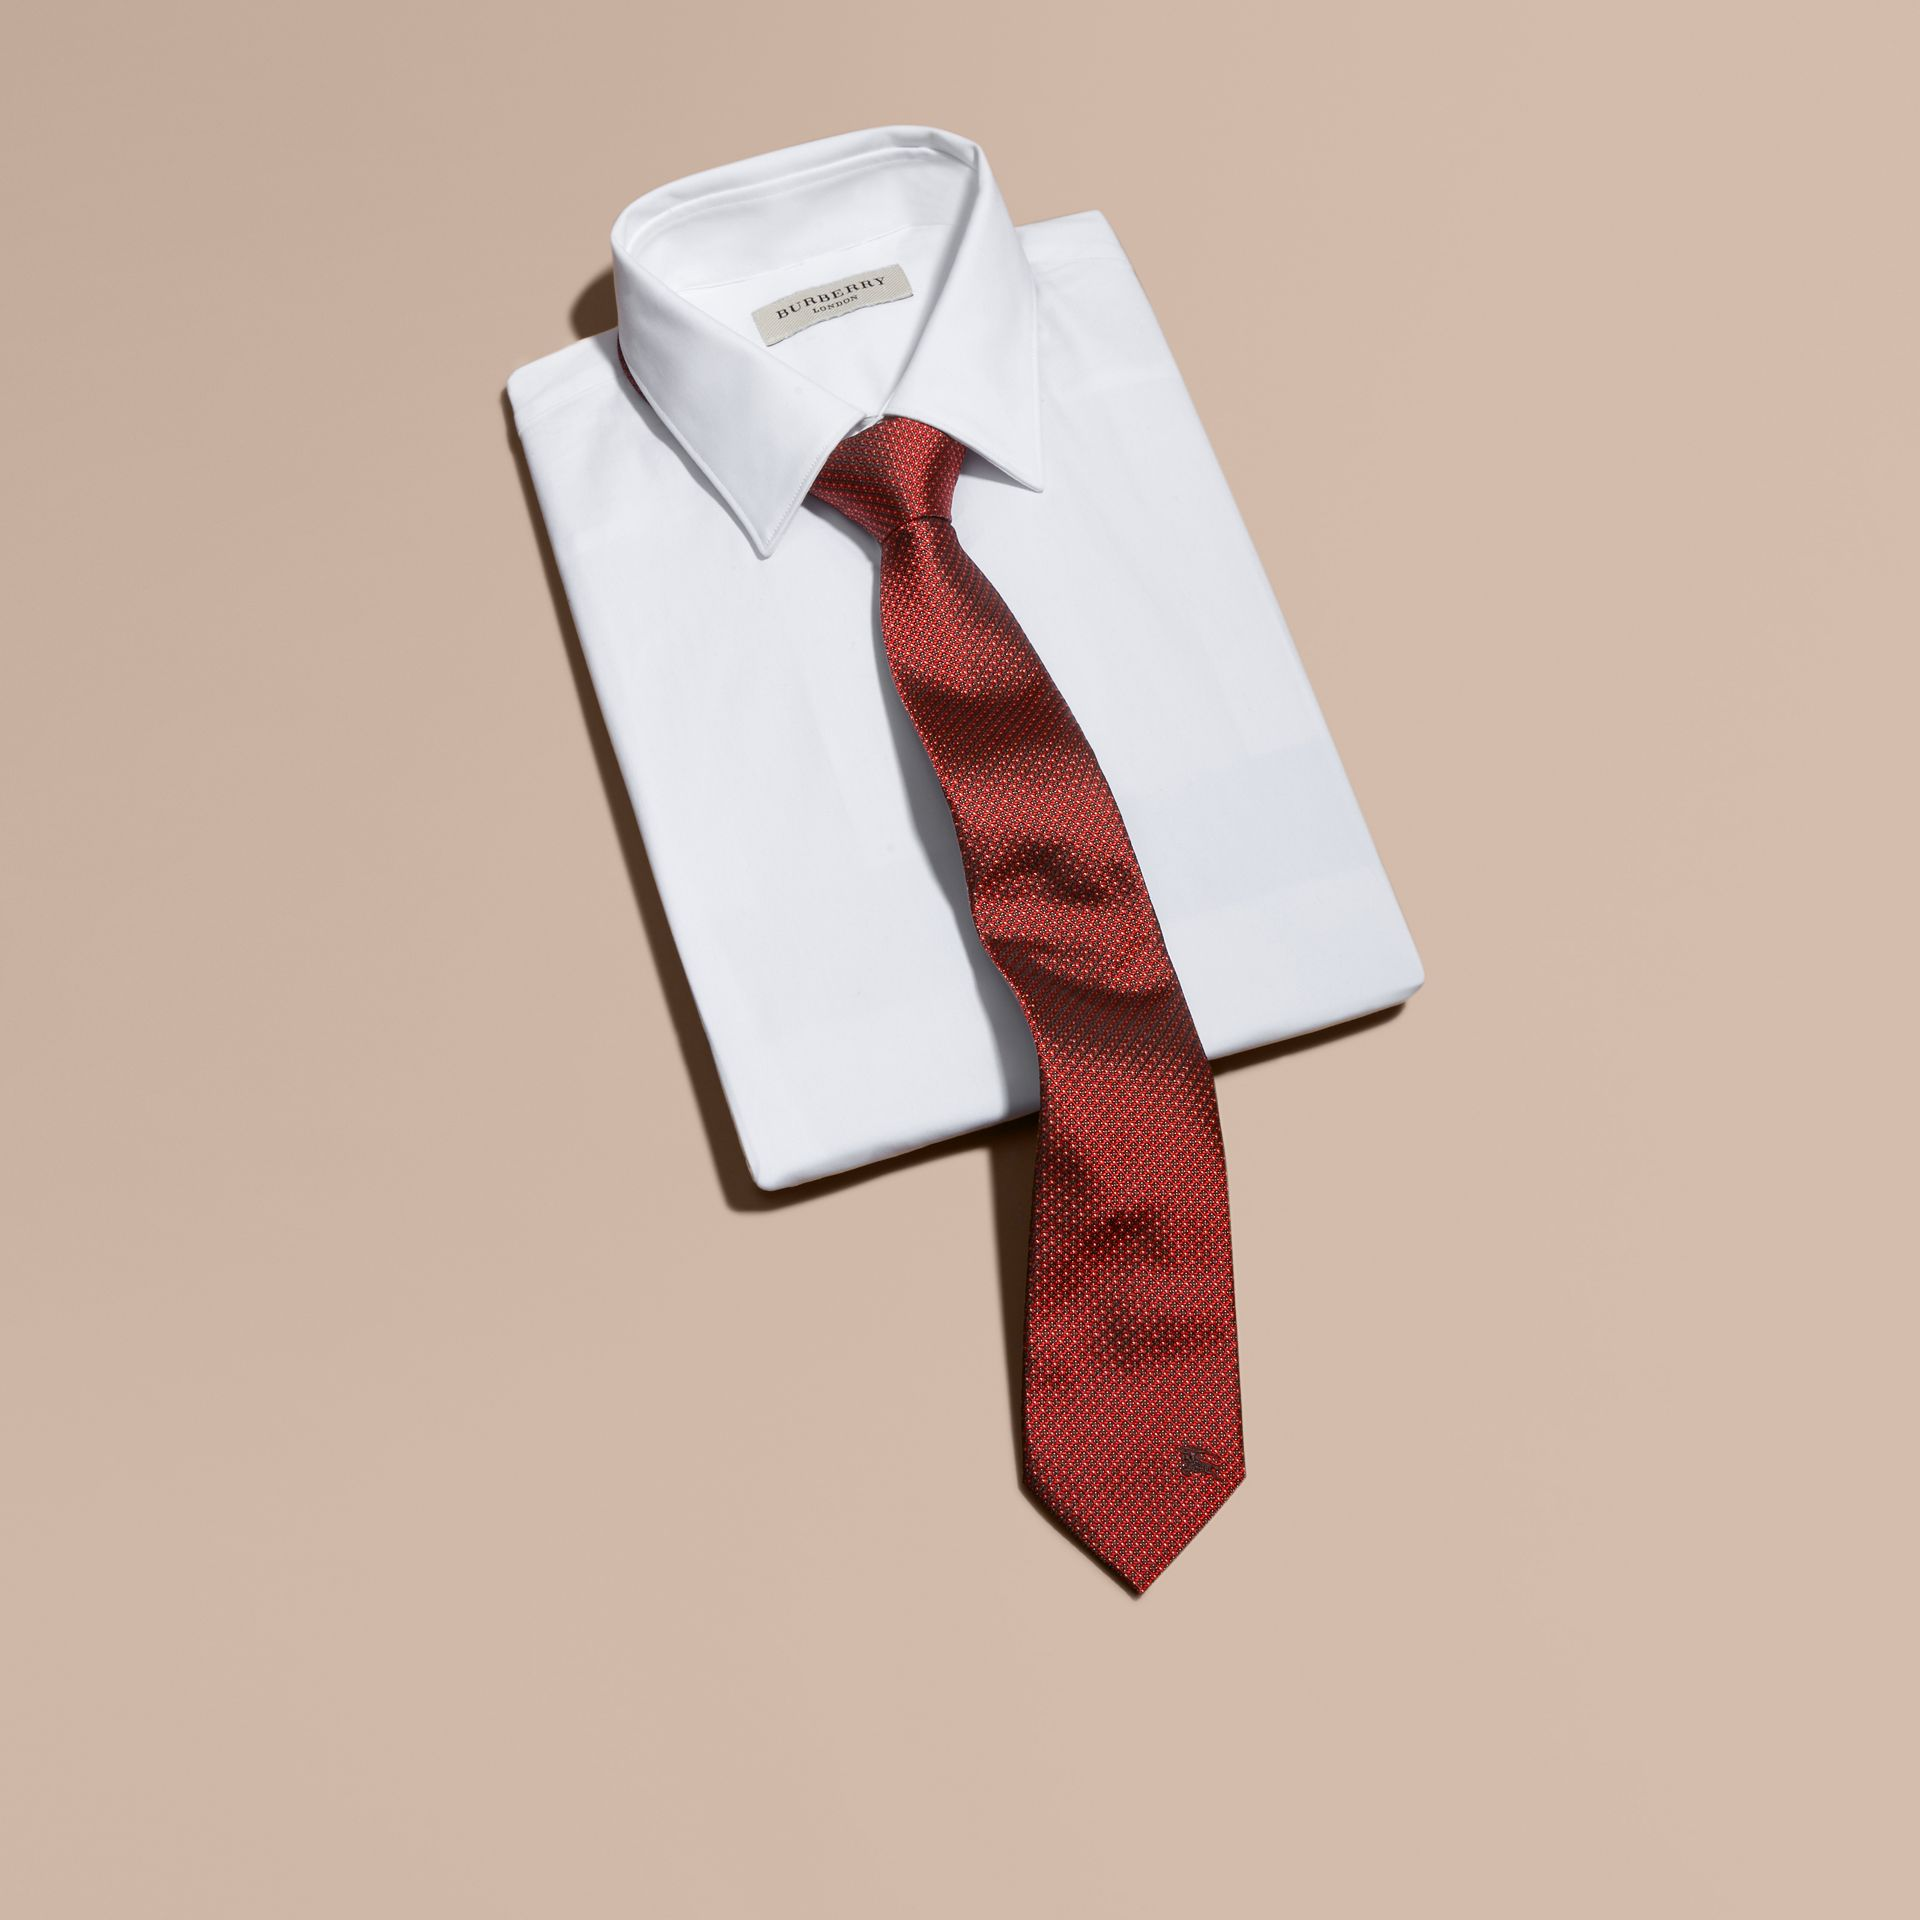 Modern Cut Patterned Silk Tie in Parade Red - Men | Burberry - gallery image 4